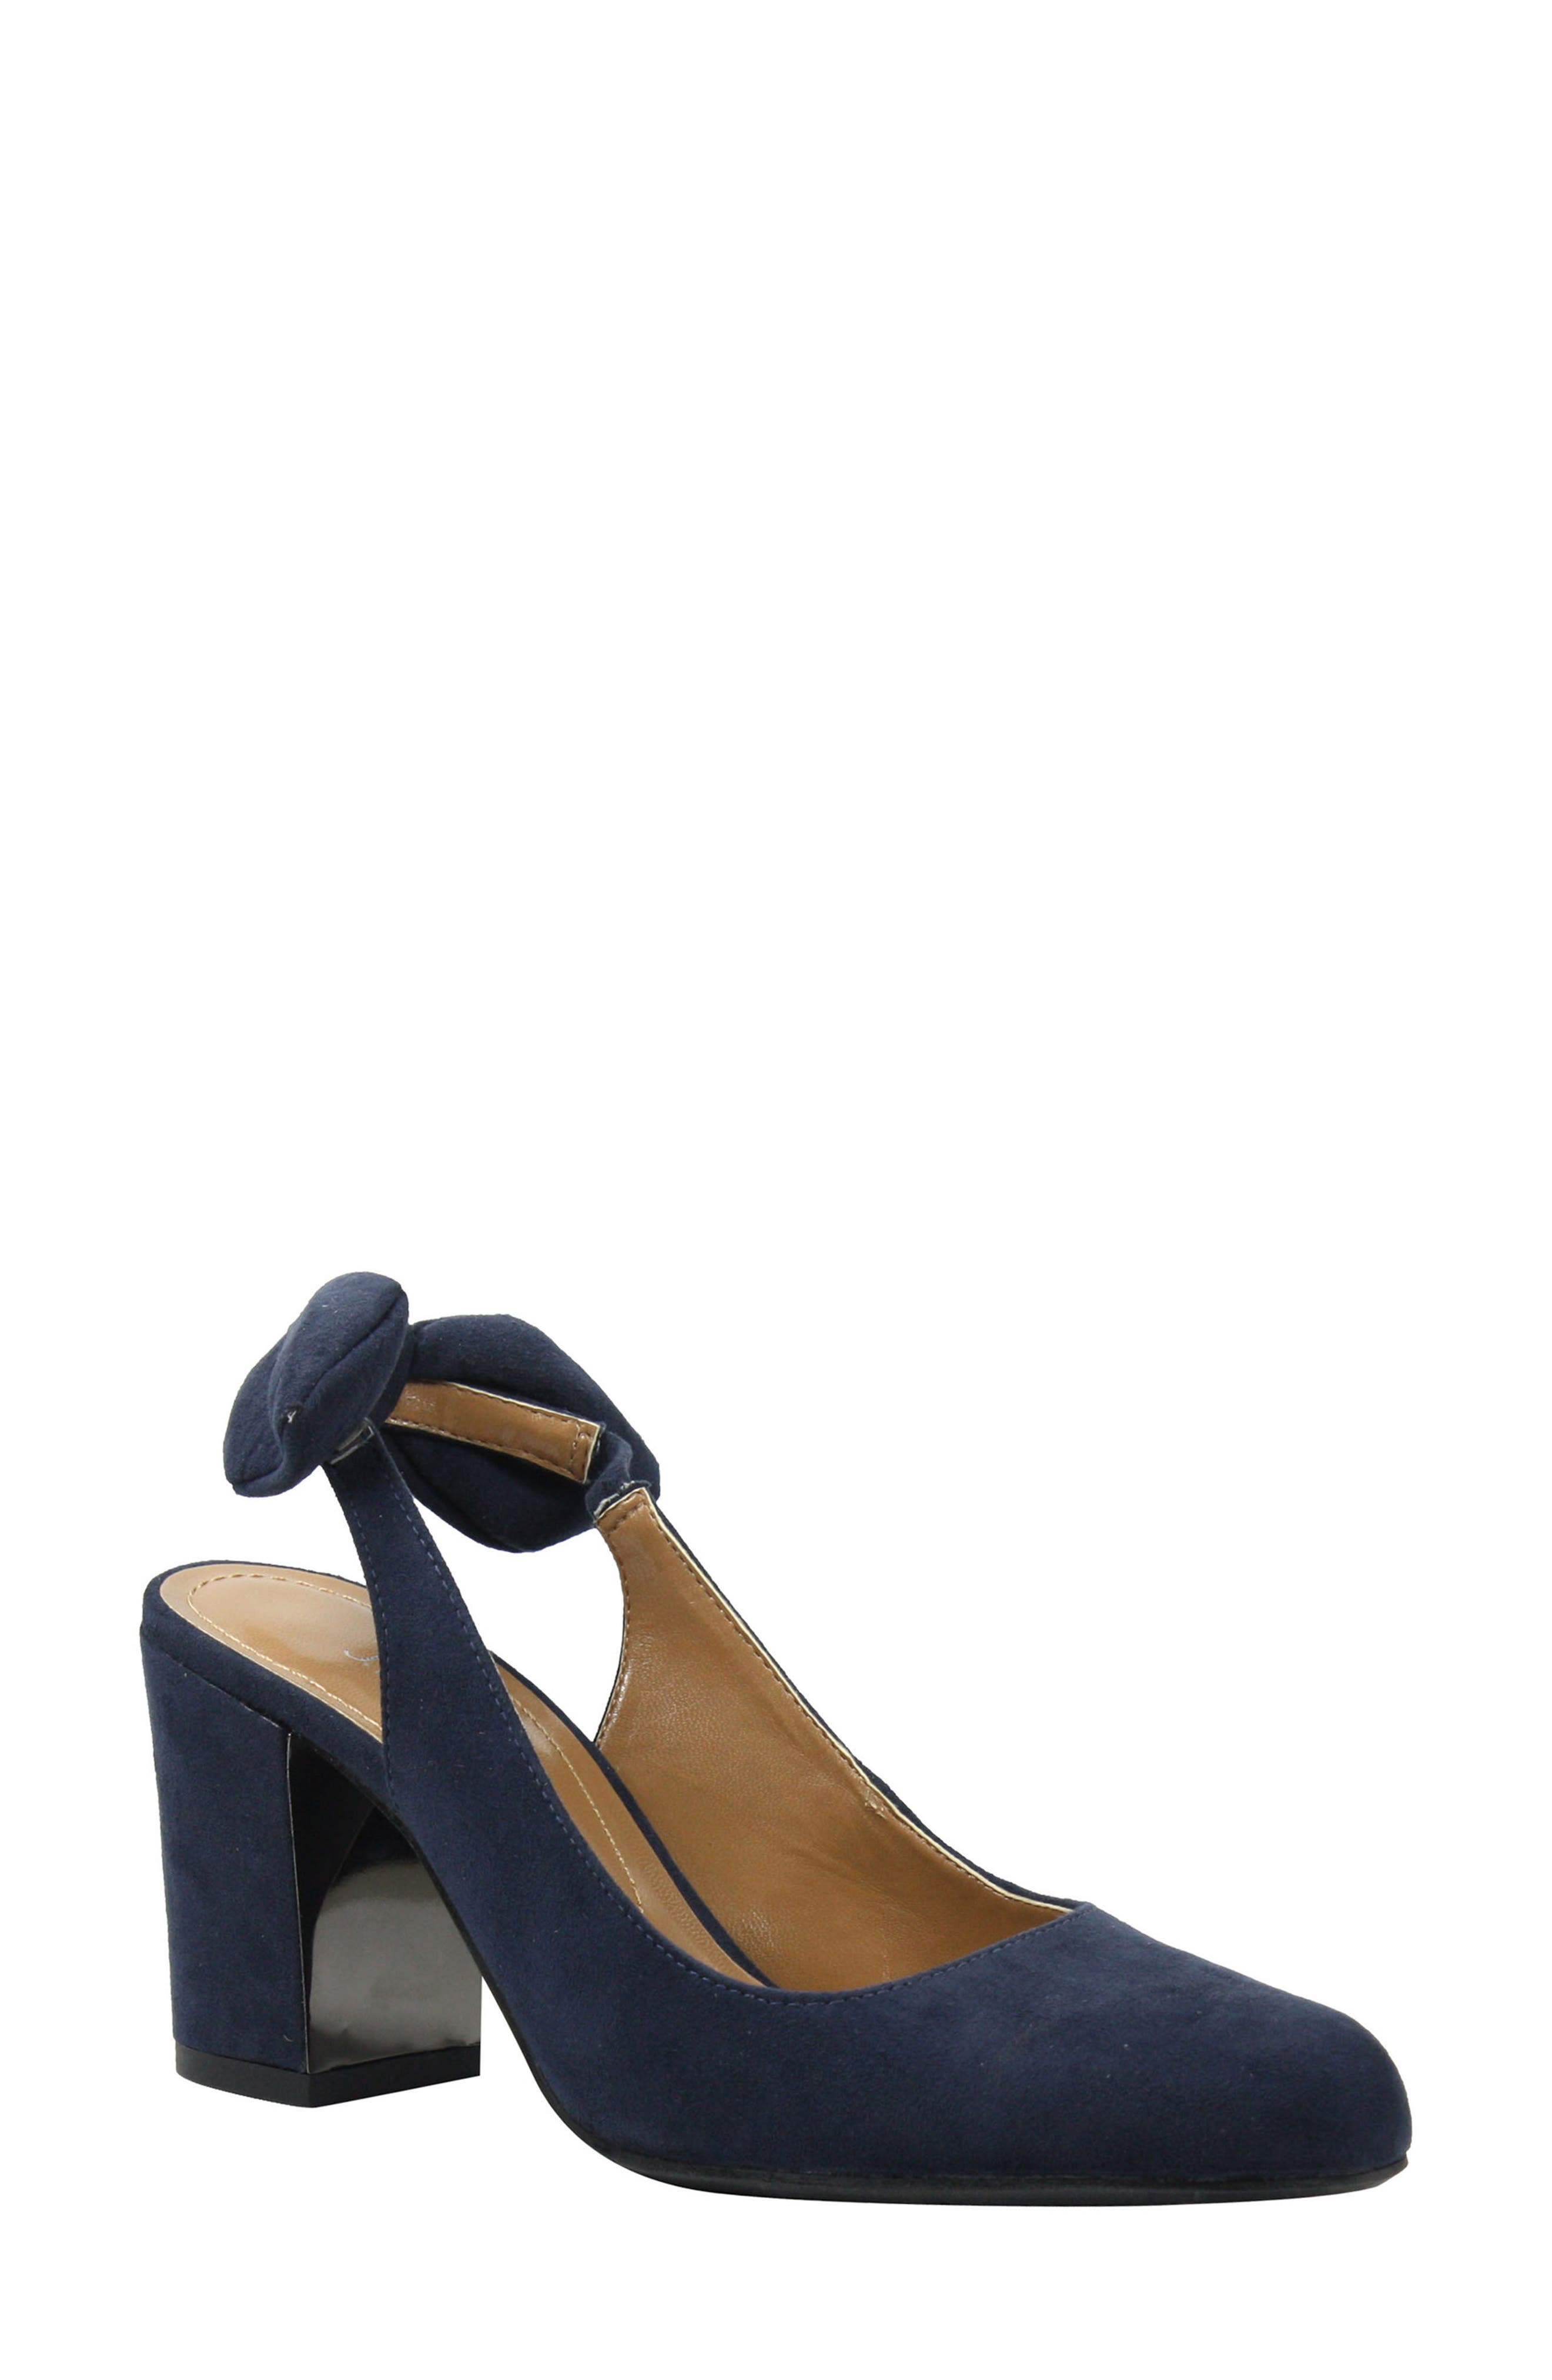 Kennedi Slingback Pump,                             Main thumbnail 1, color,                             Navy